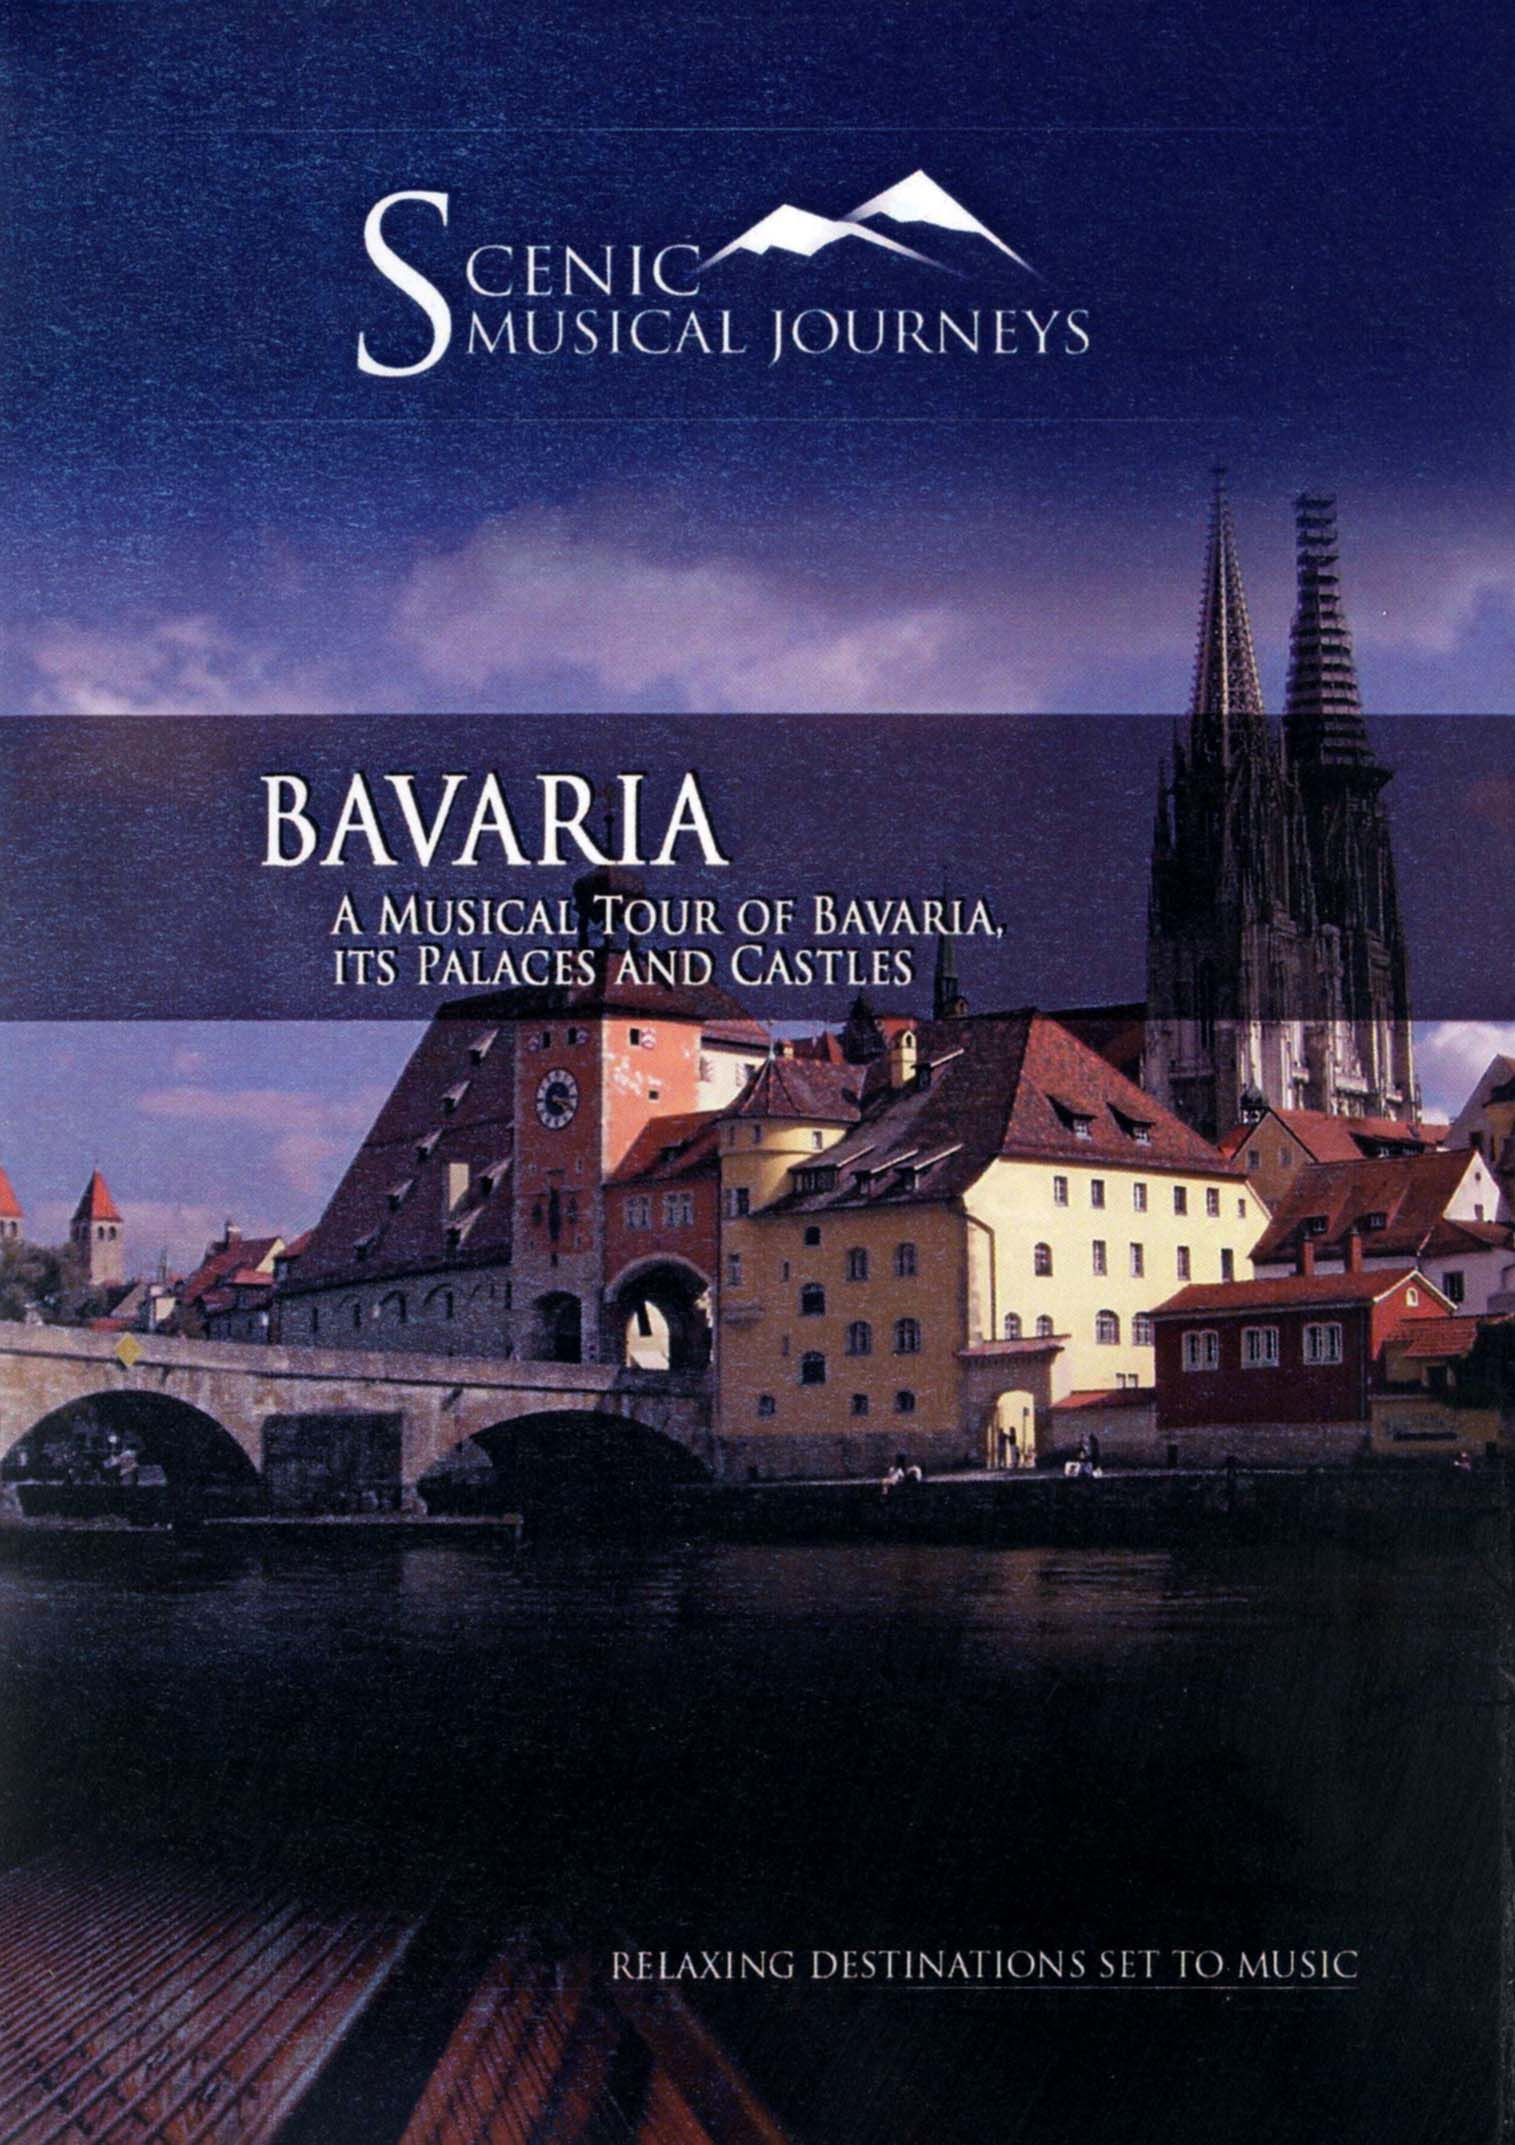 Scenic Musical Journeys: Bavaria - A Musical Tour of Bavaria, Its Palaces and Castles